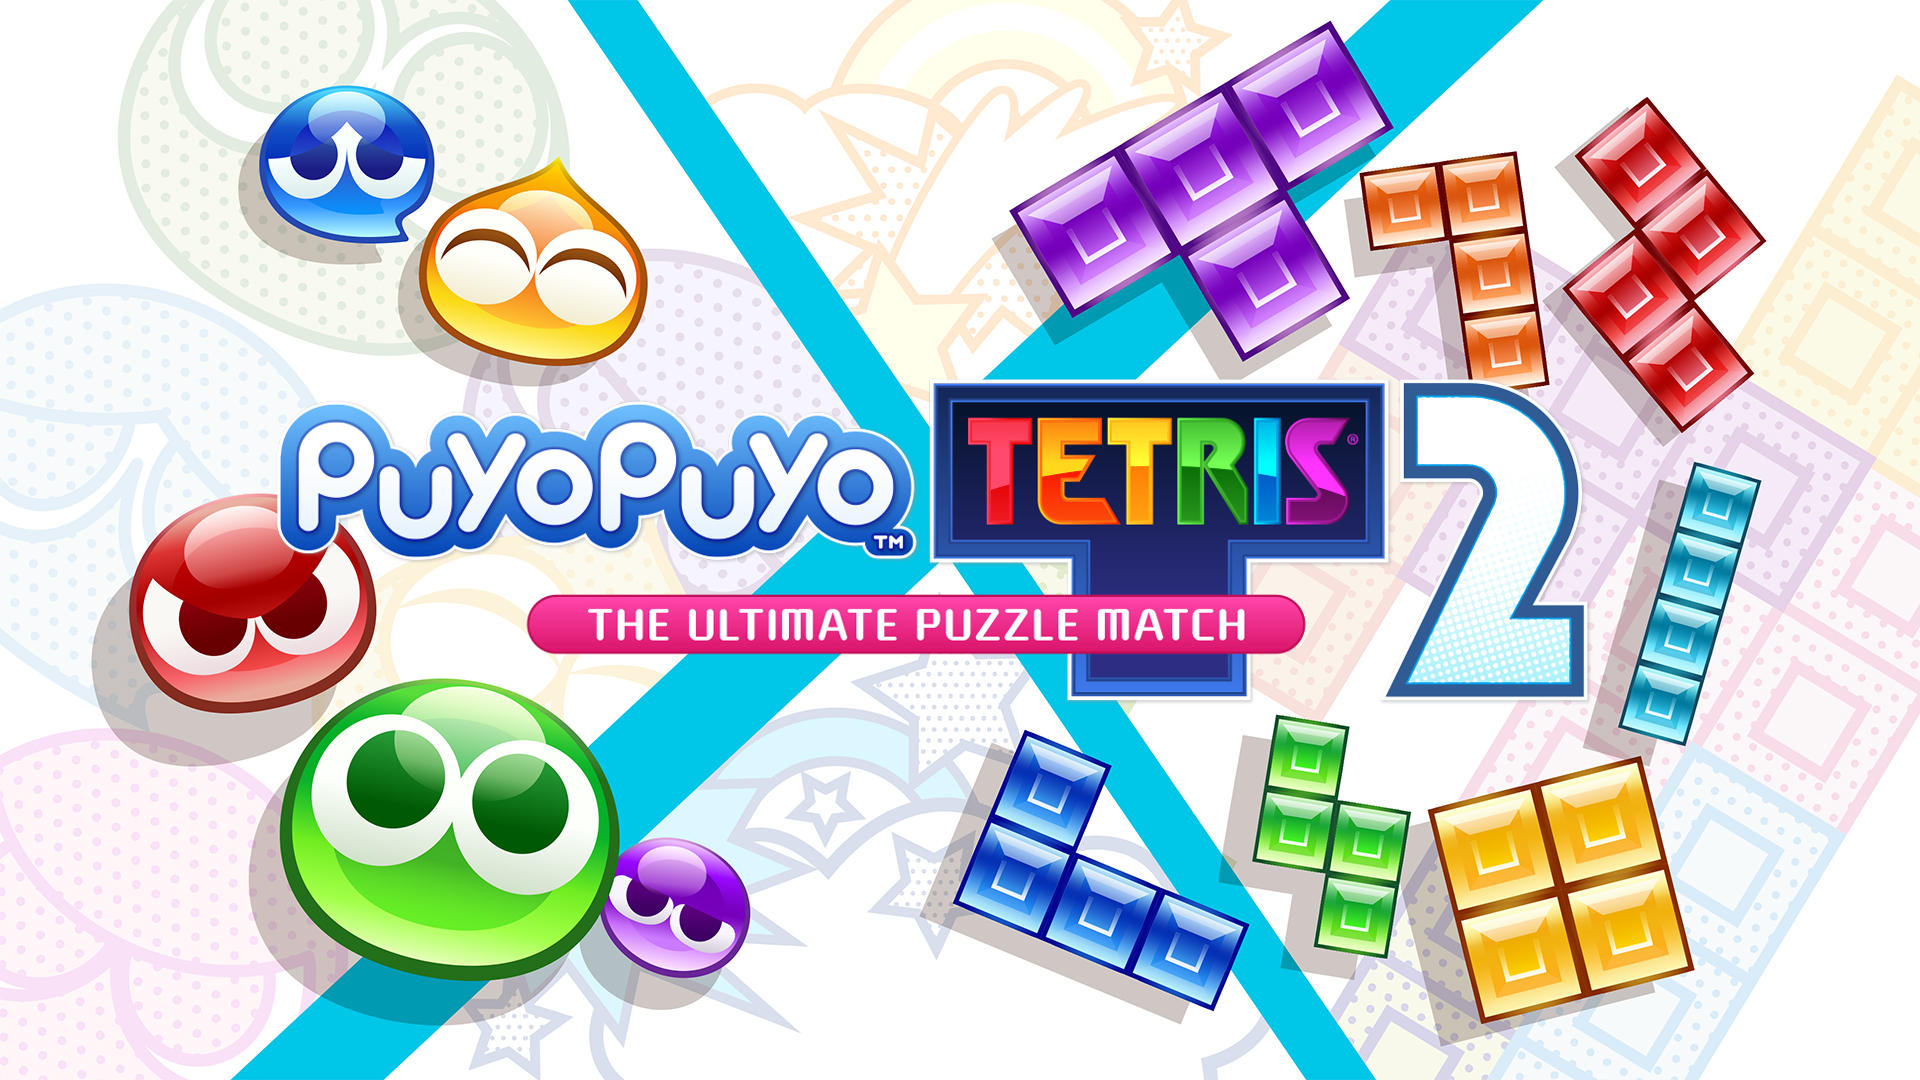 New Puyo Puyo Tetris 2 trailer features Tetris creator Alexey Pajitnov & Adventure Mode details